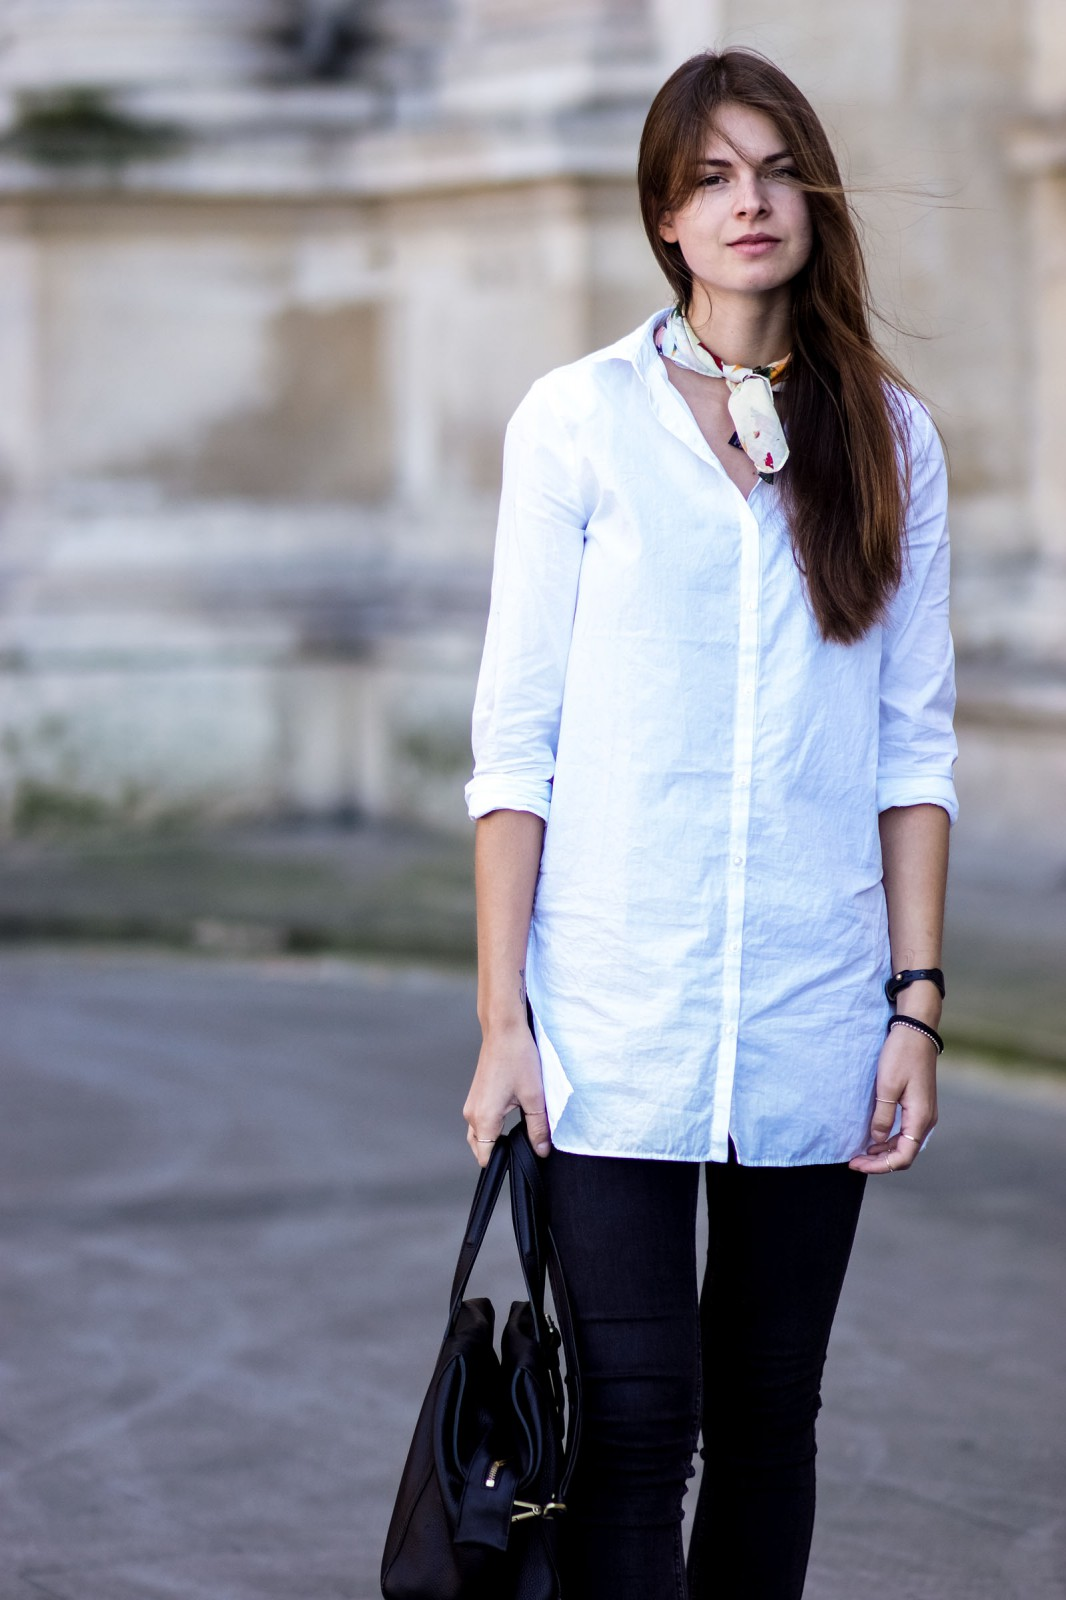 How to wear a white shirt